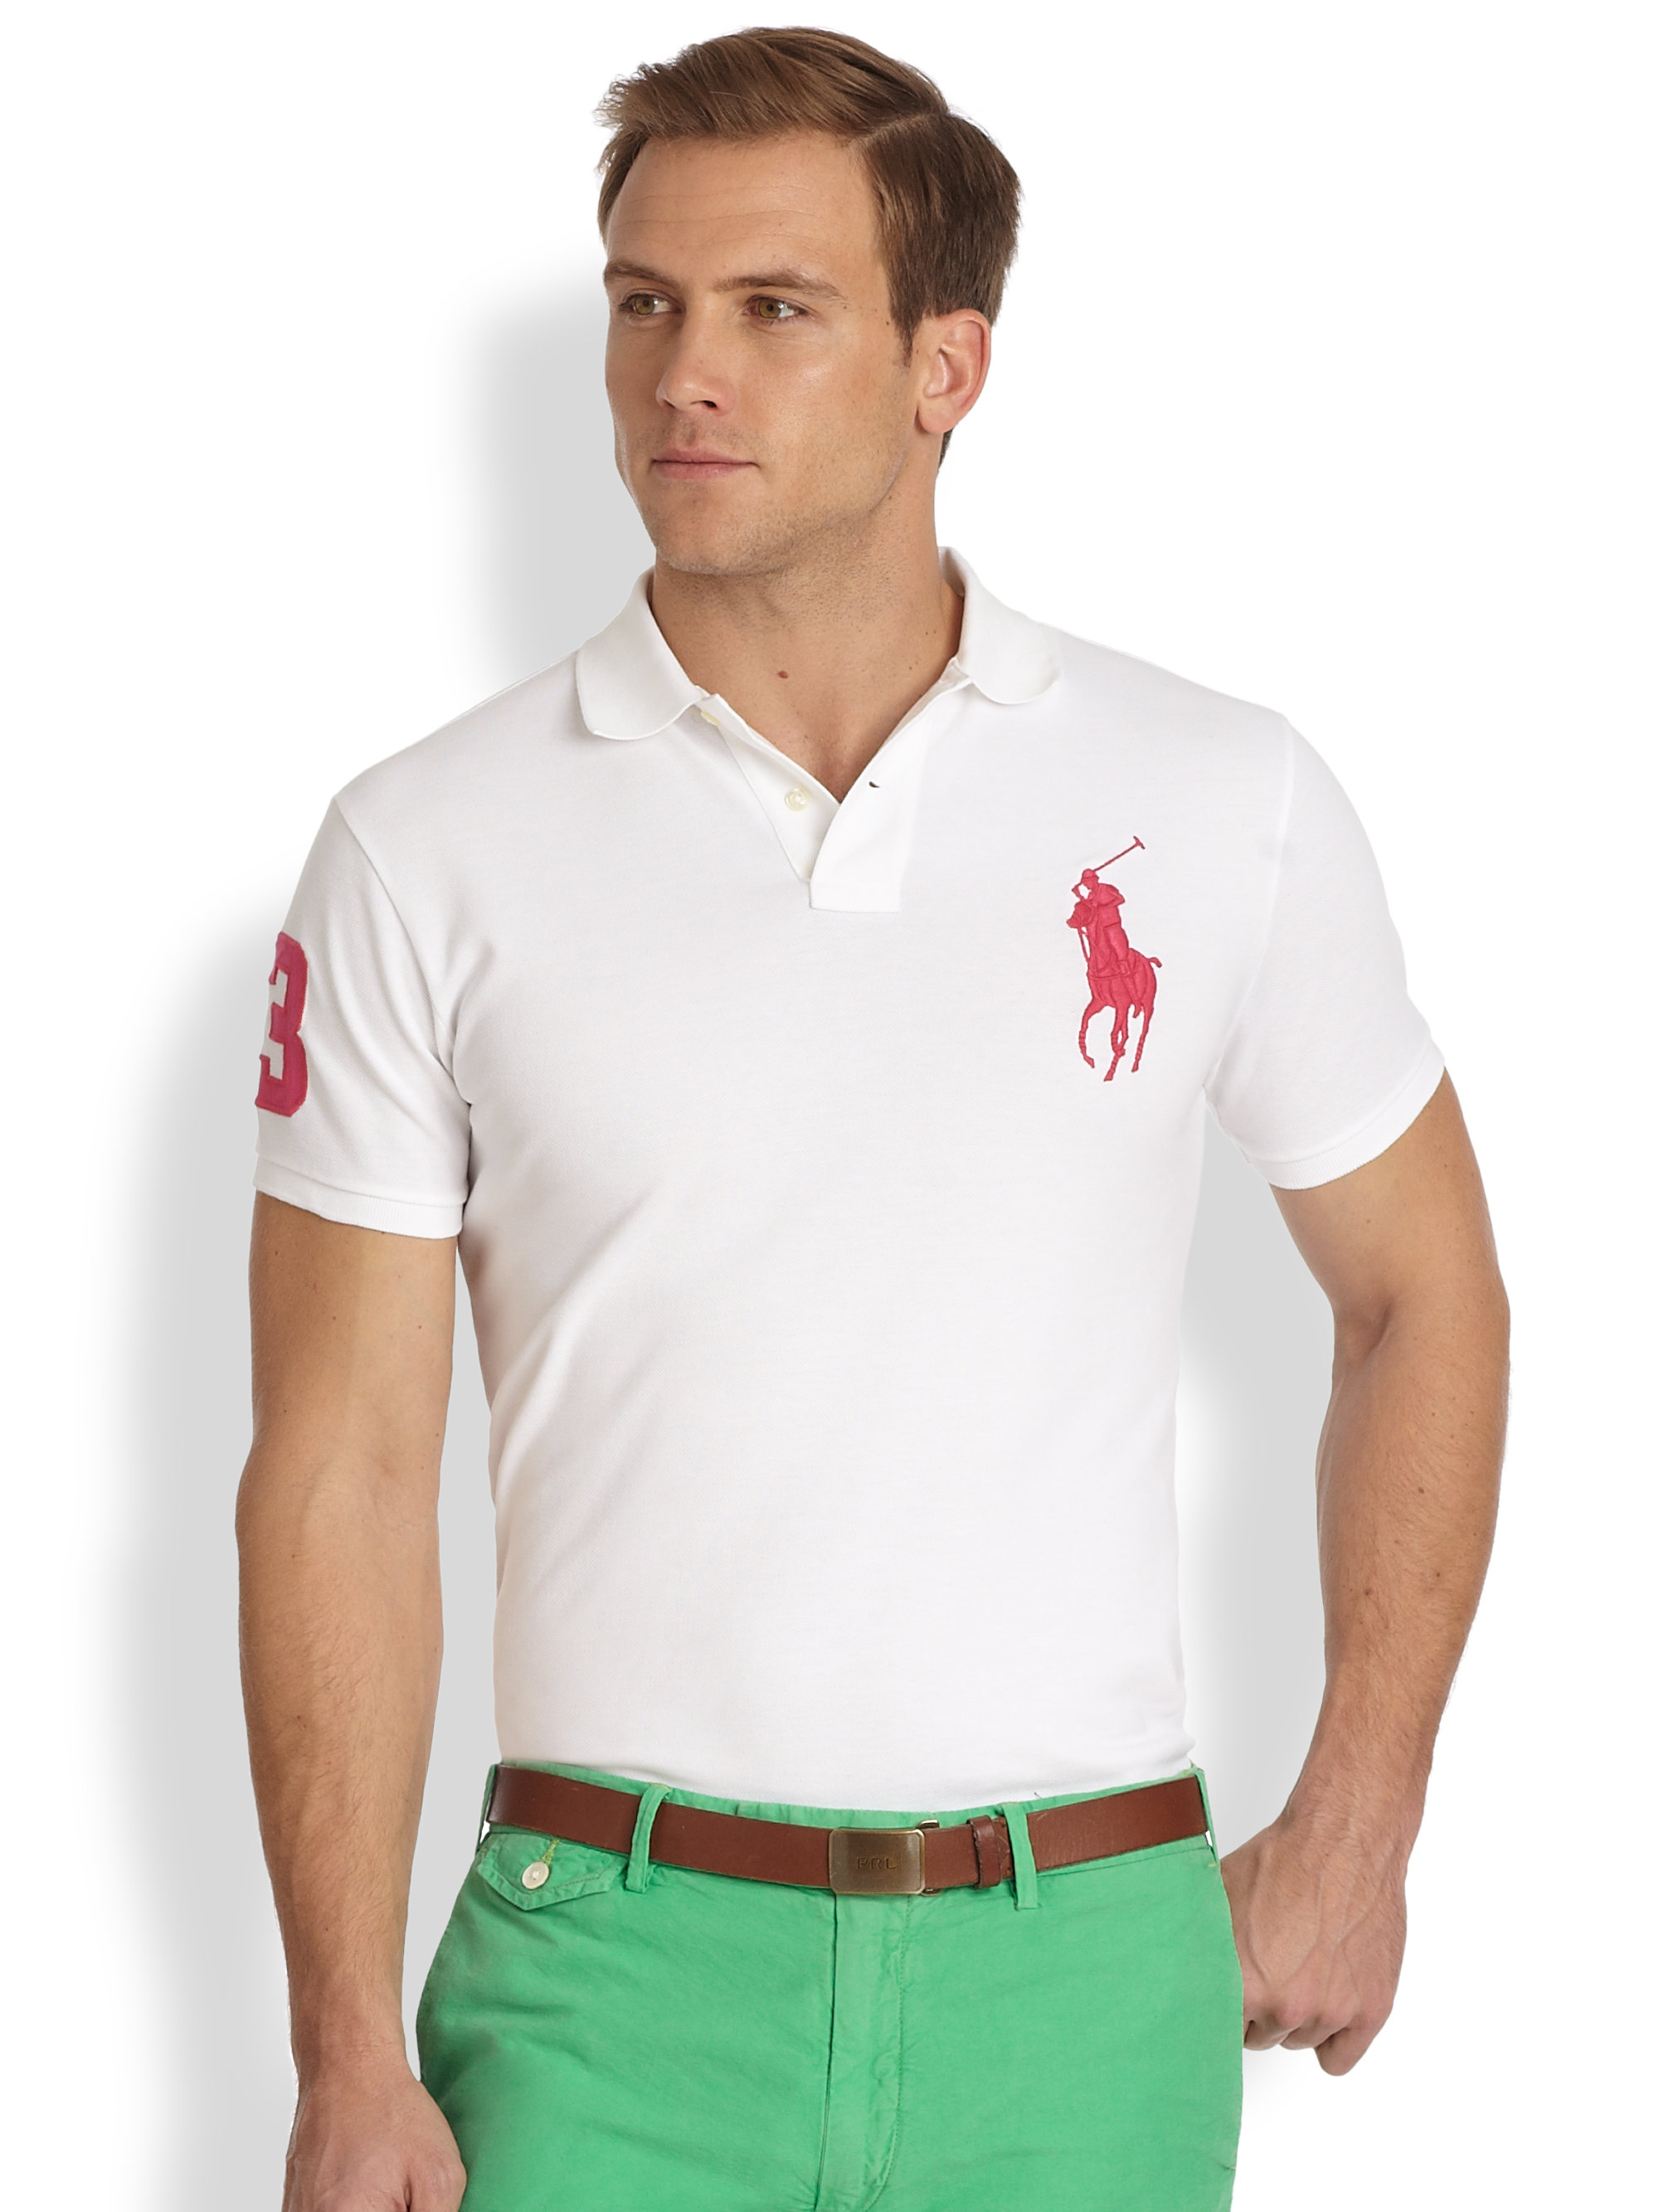 Polo ralph lauren Customfit Big Pony Cotton Mesh Polo in White for Men (WHITE PINK) | Lyst